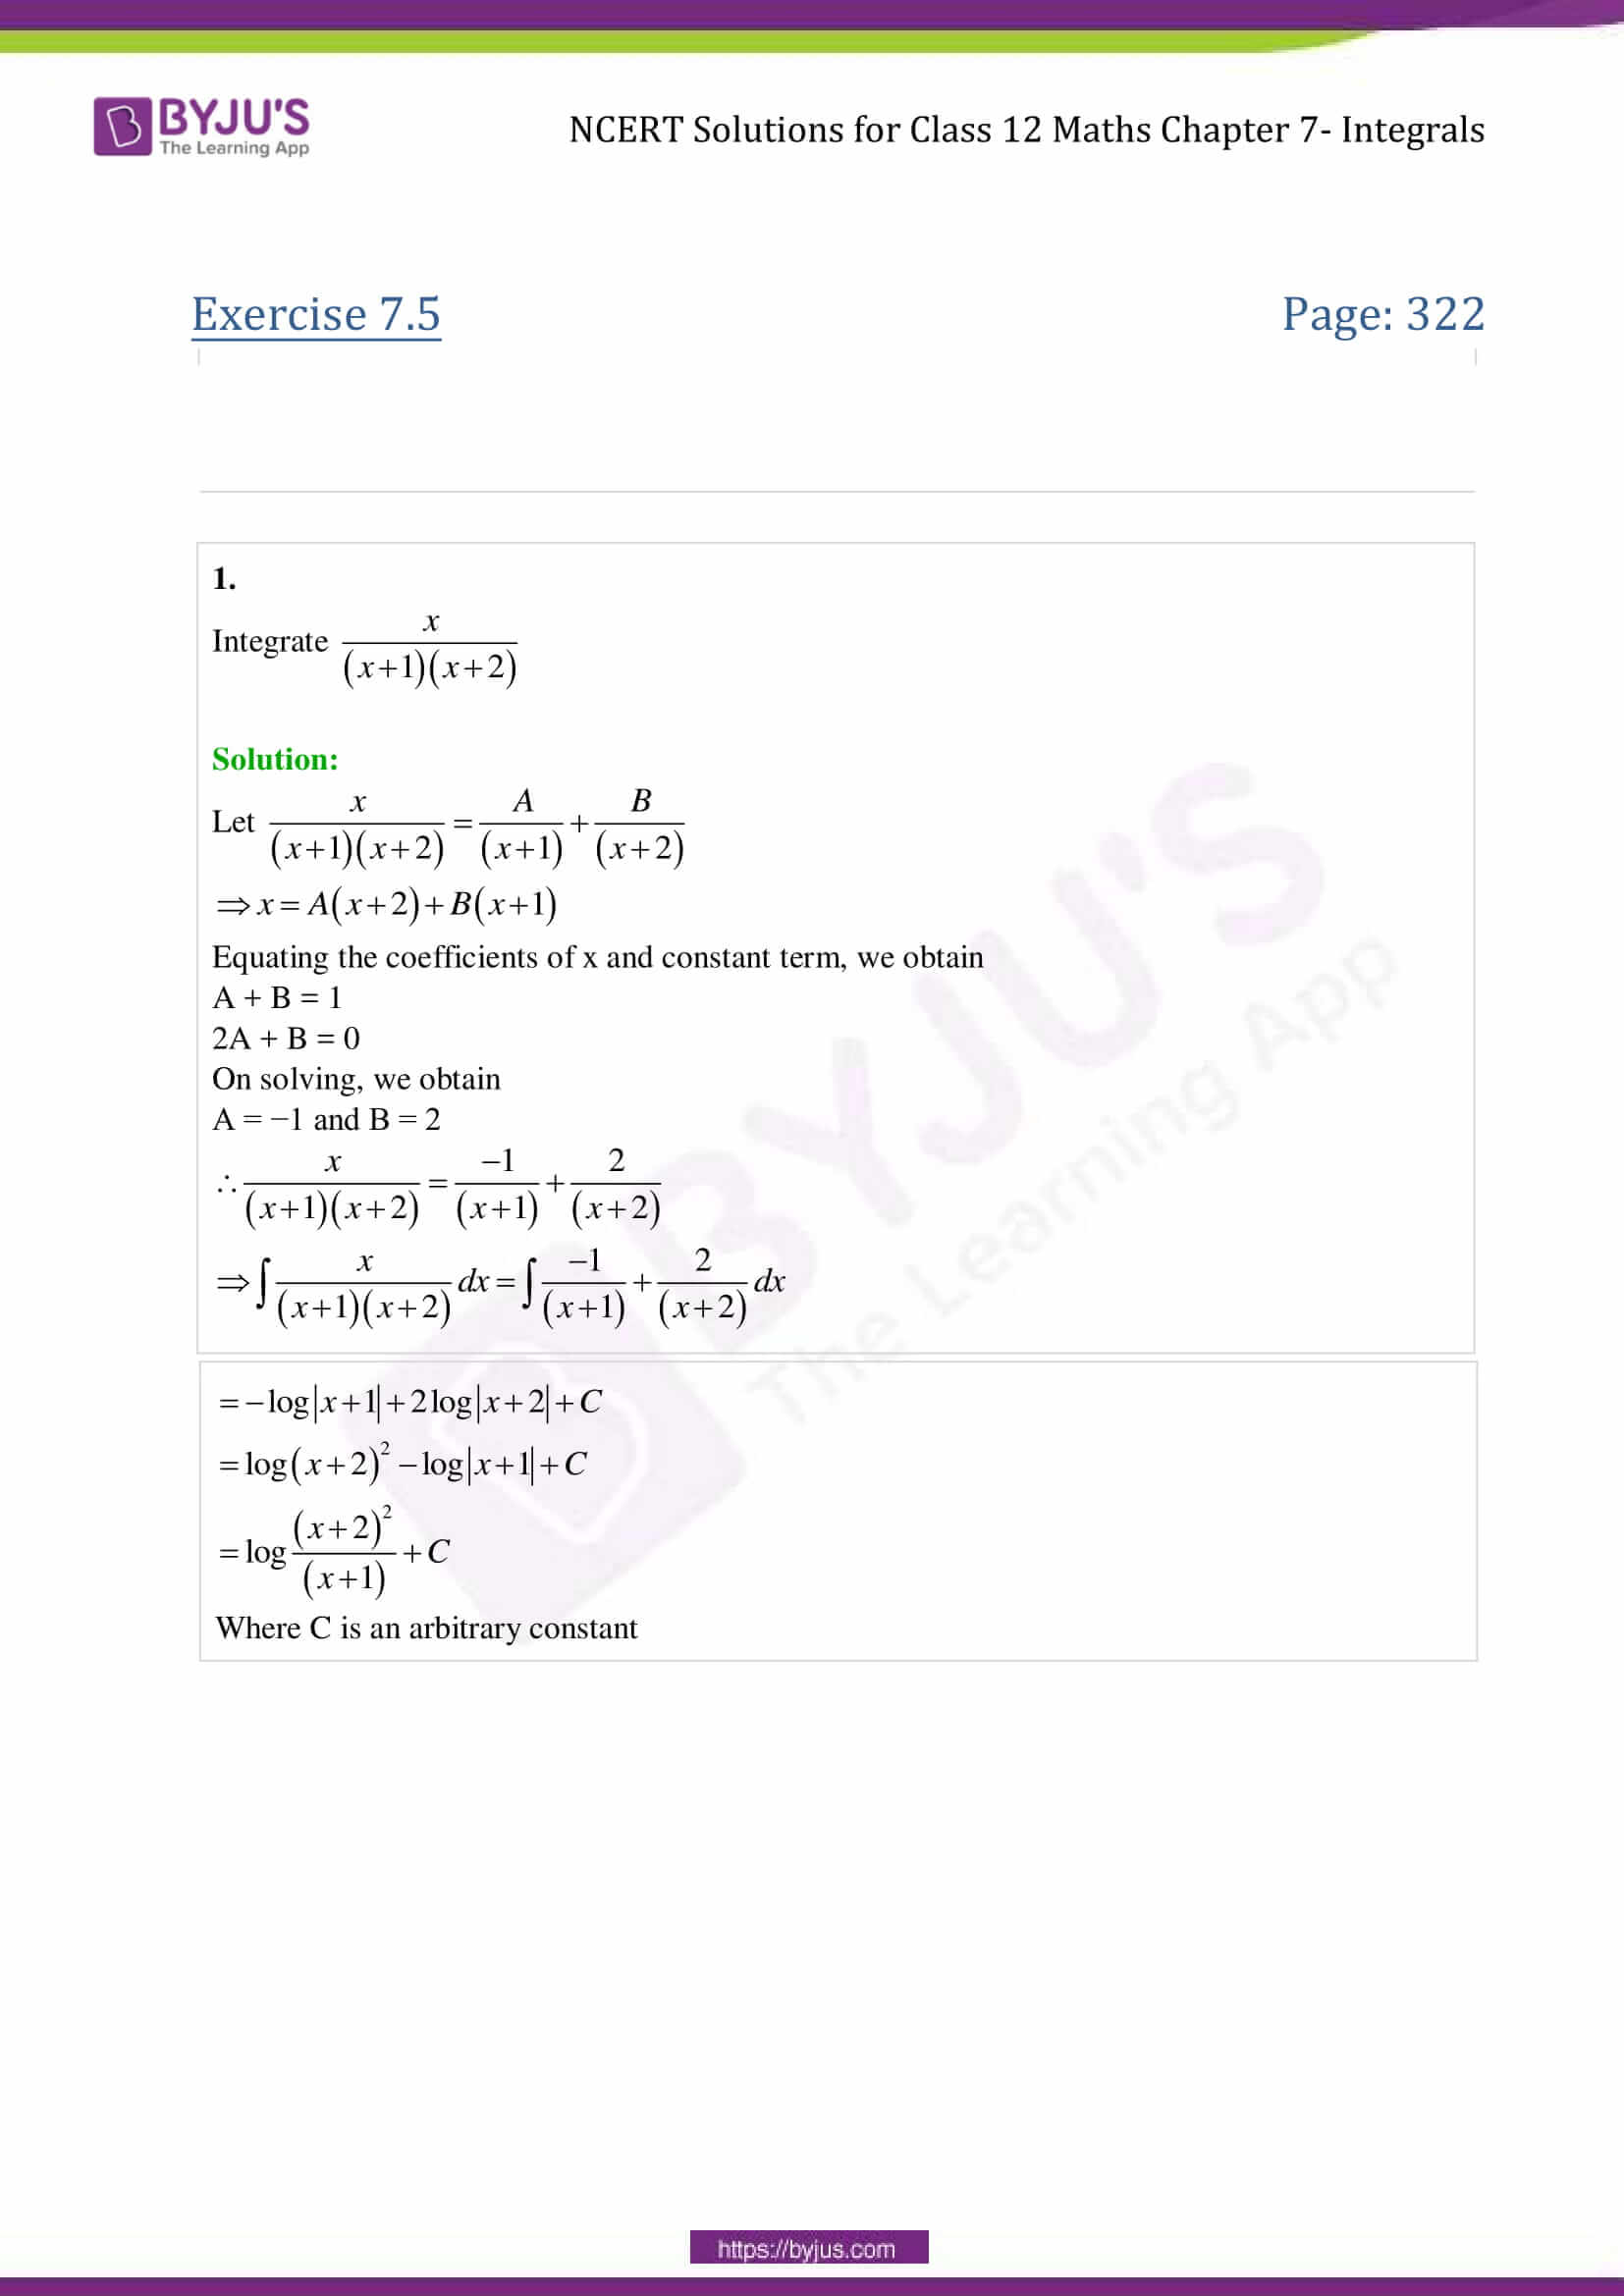 NCERT Solutions for Class 12 Maths Exercise 7 5 Chapter 7- integrals